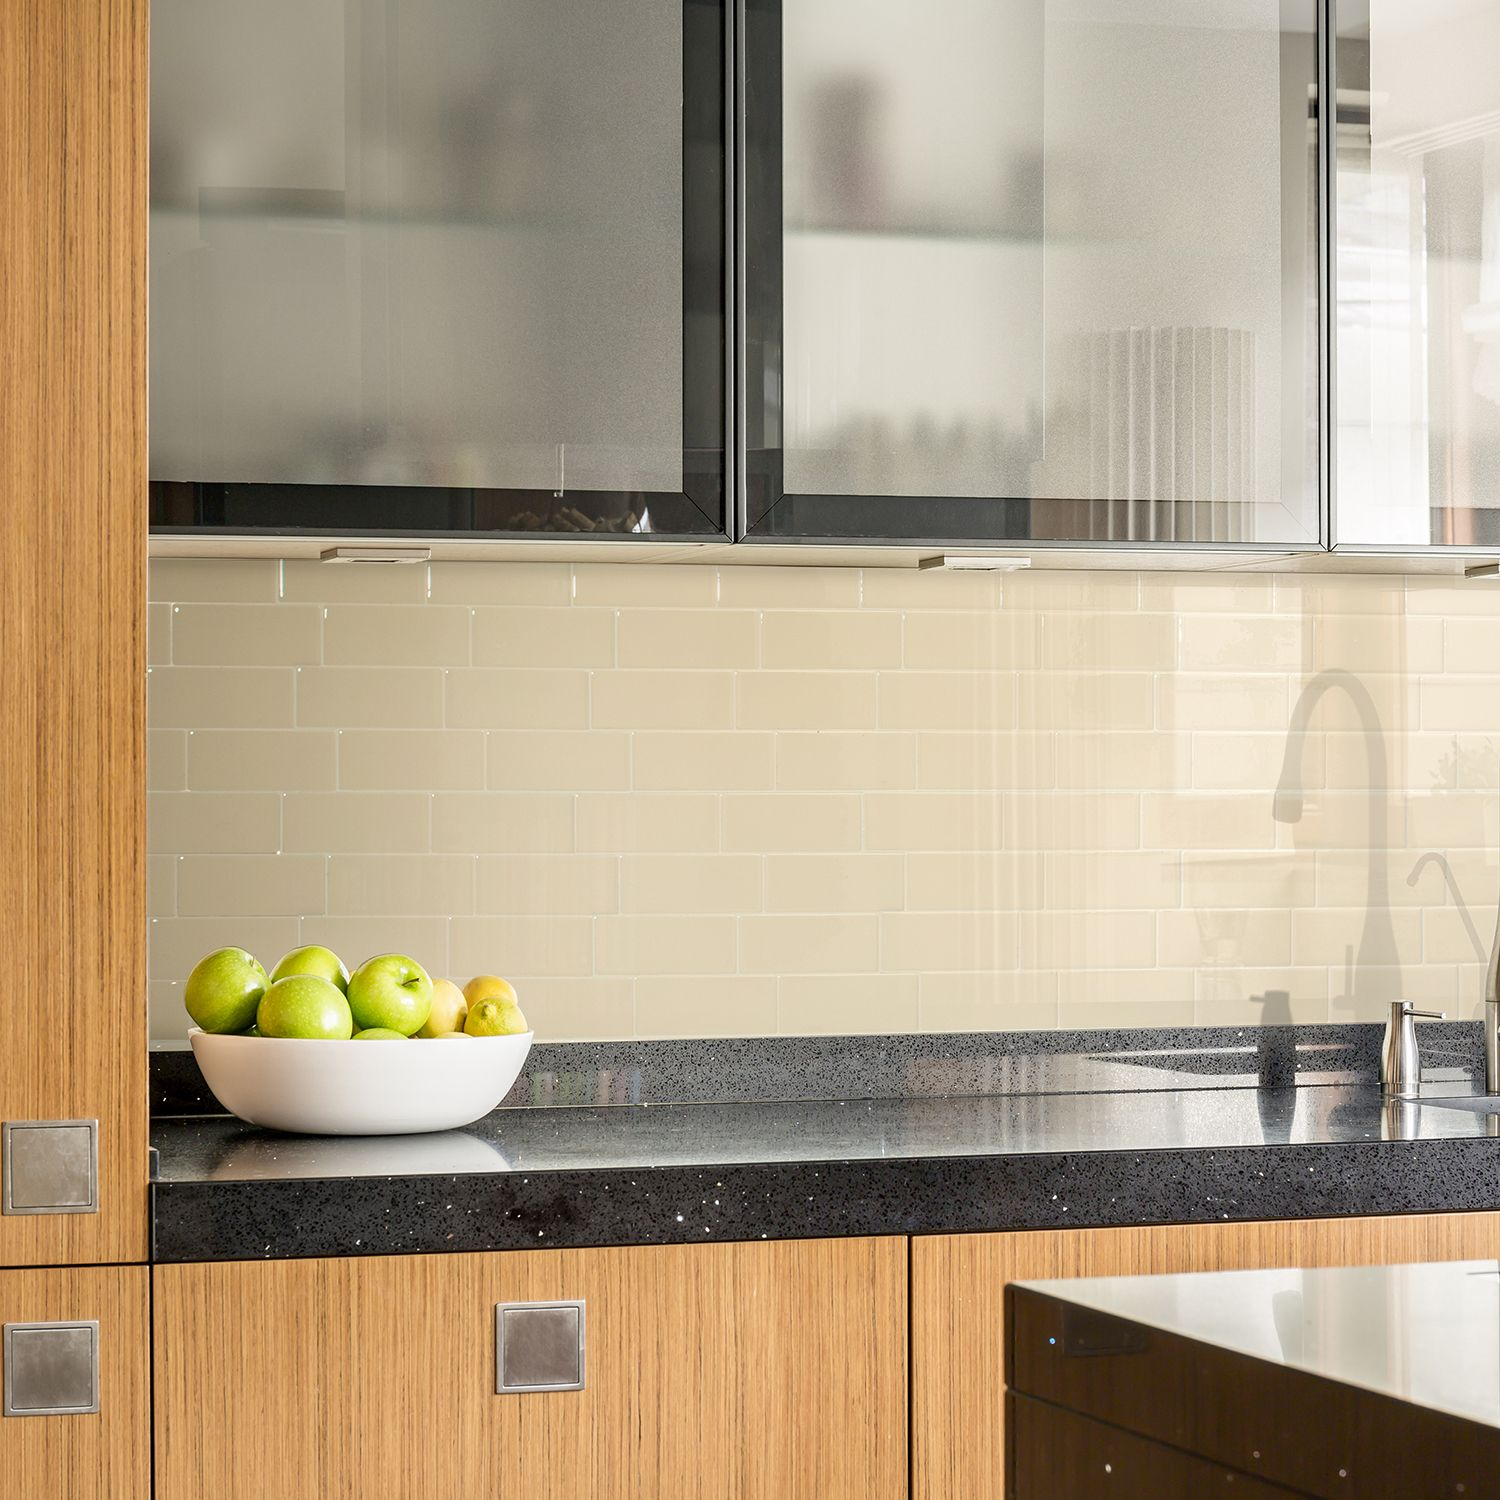 The peel and stick Smart Tiles for